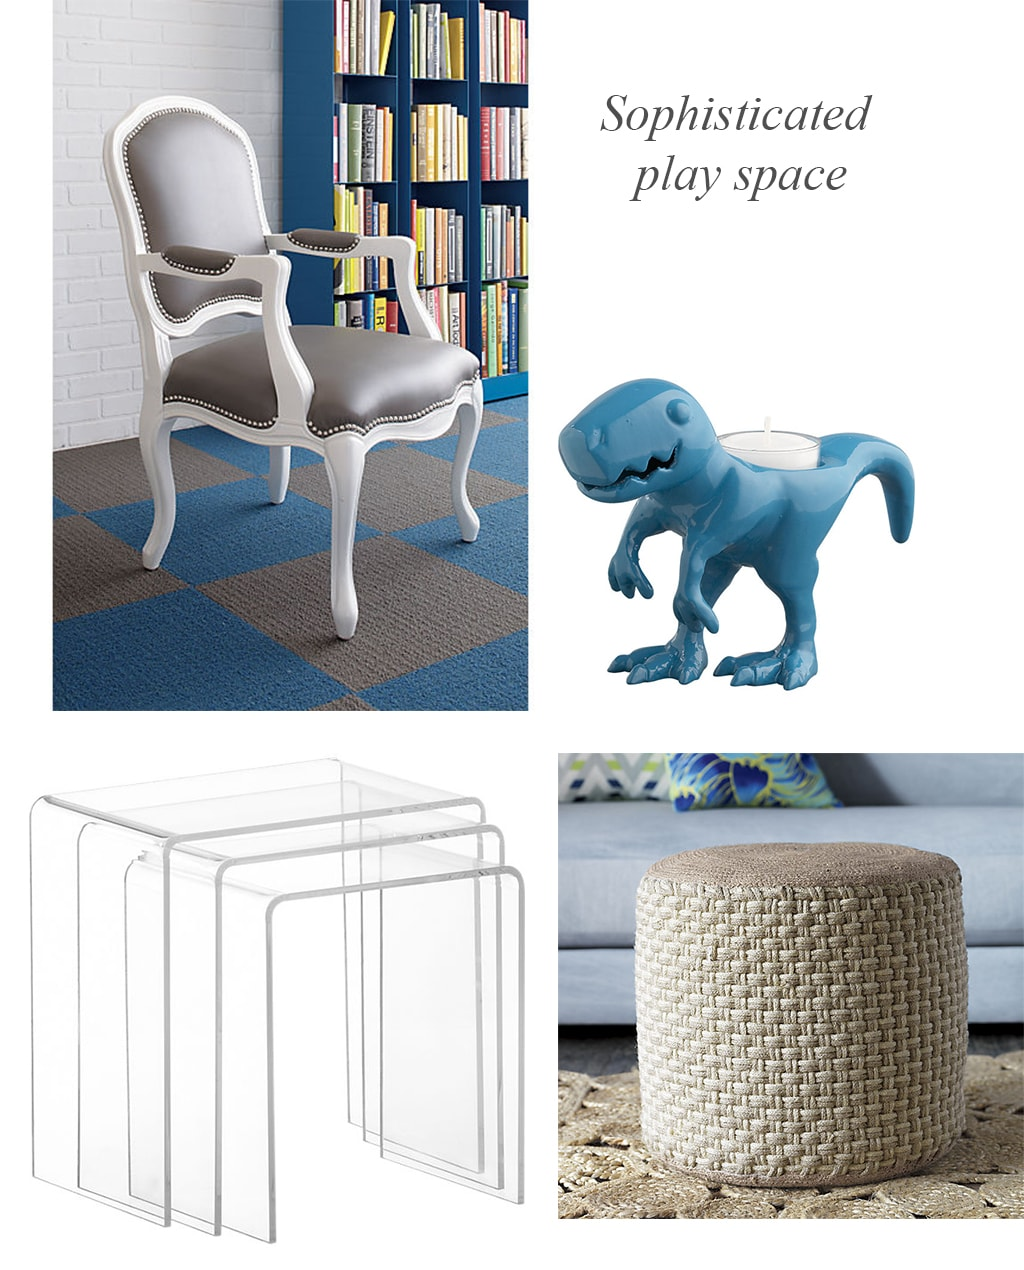 Sophisticated Play Space